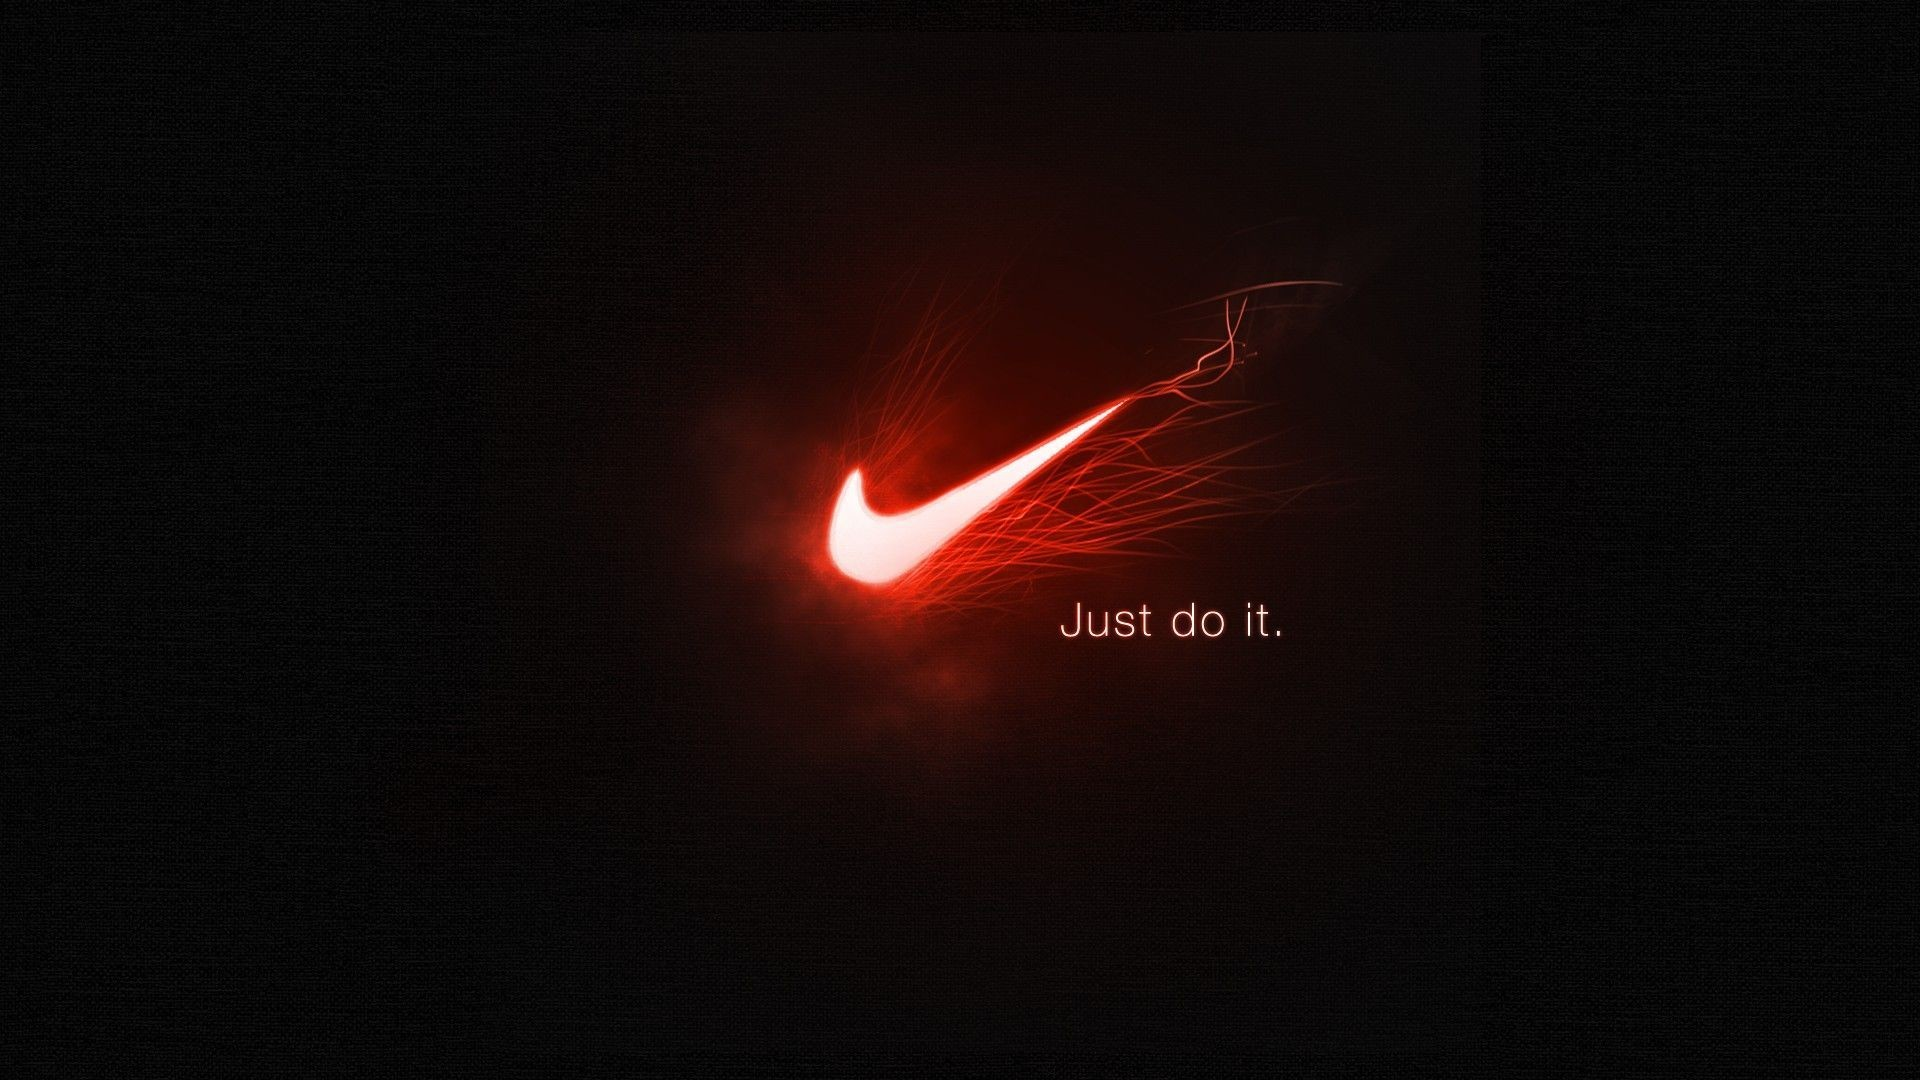 1920x1080 Explore Nike Wallpaper, Wallpaper Backgrounds, and more!